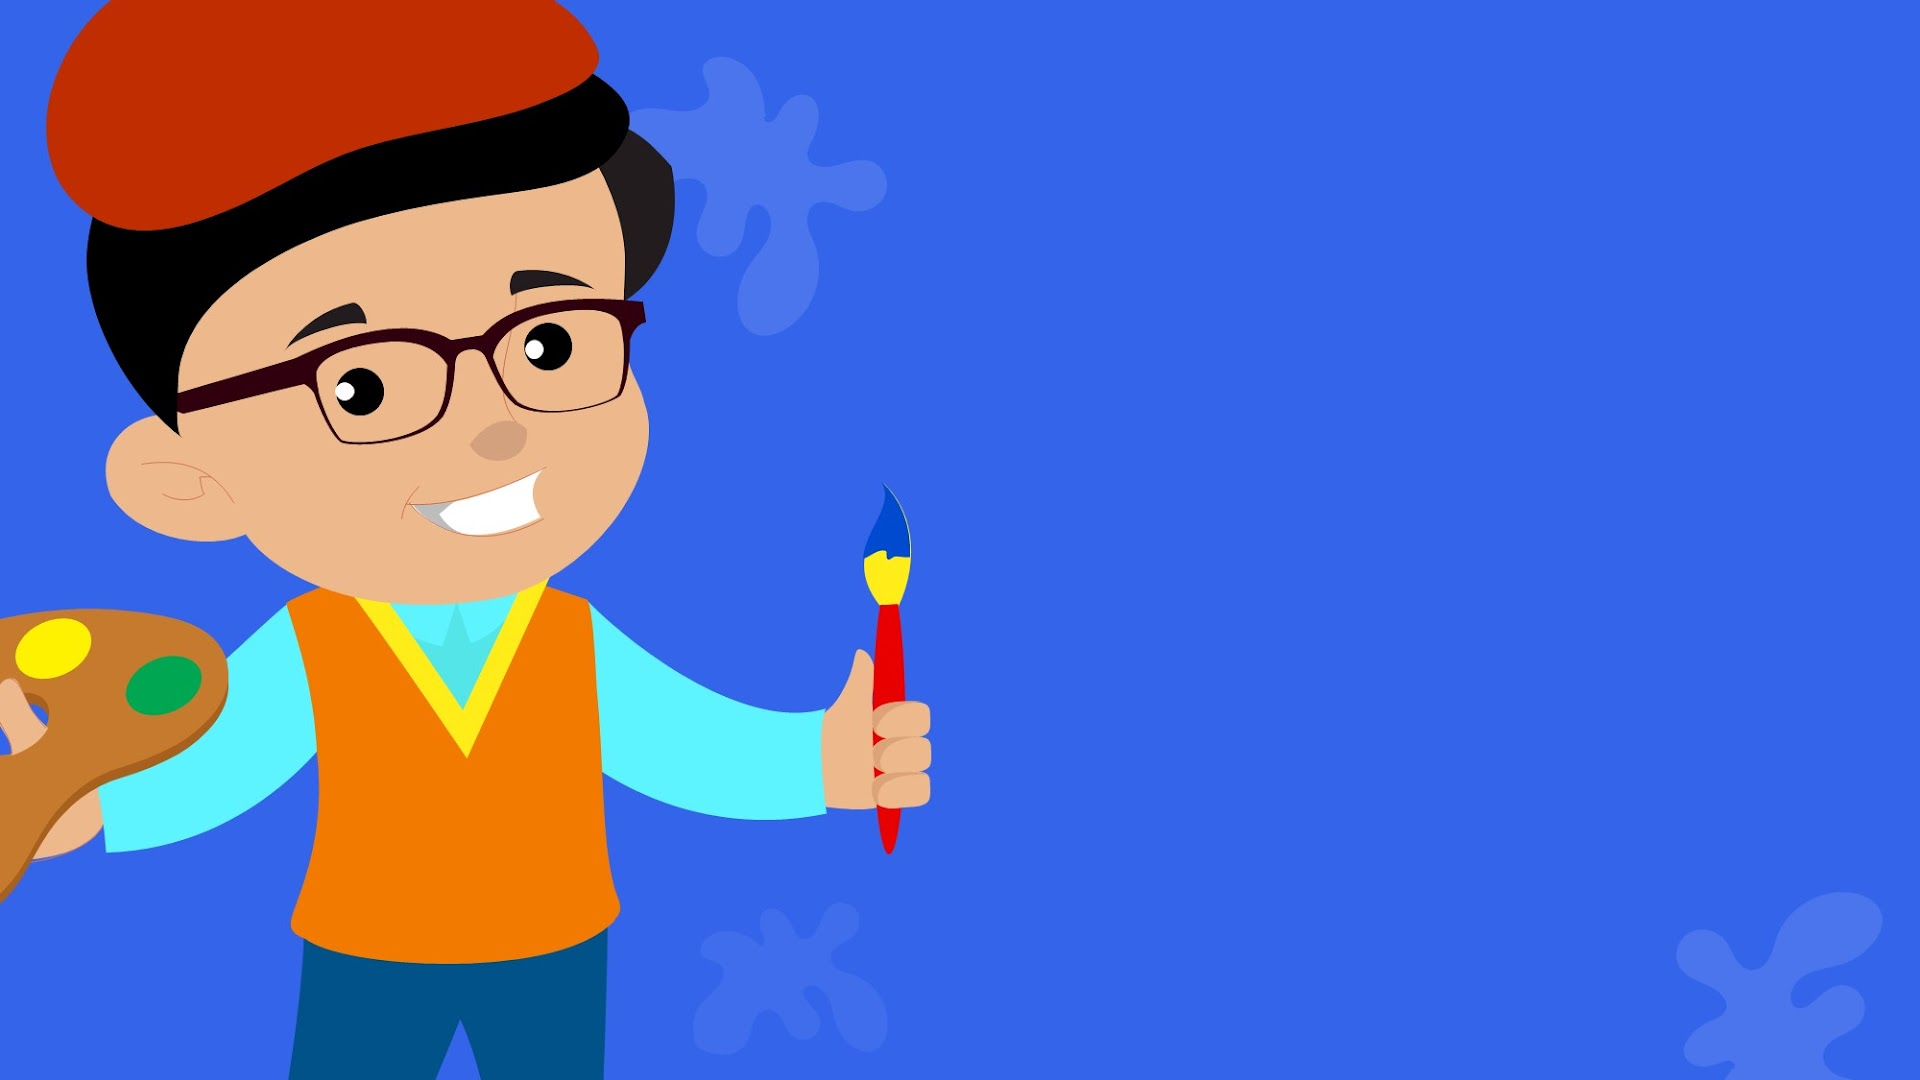 Cartoon Kid holding paint brush and colors - free background